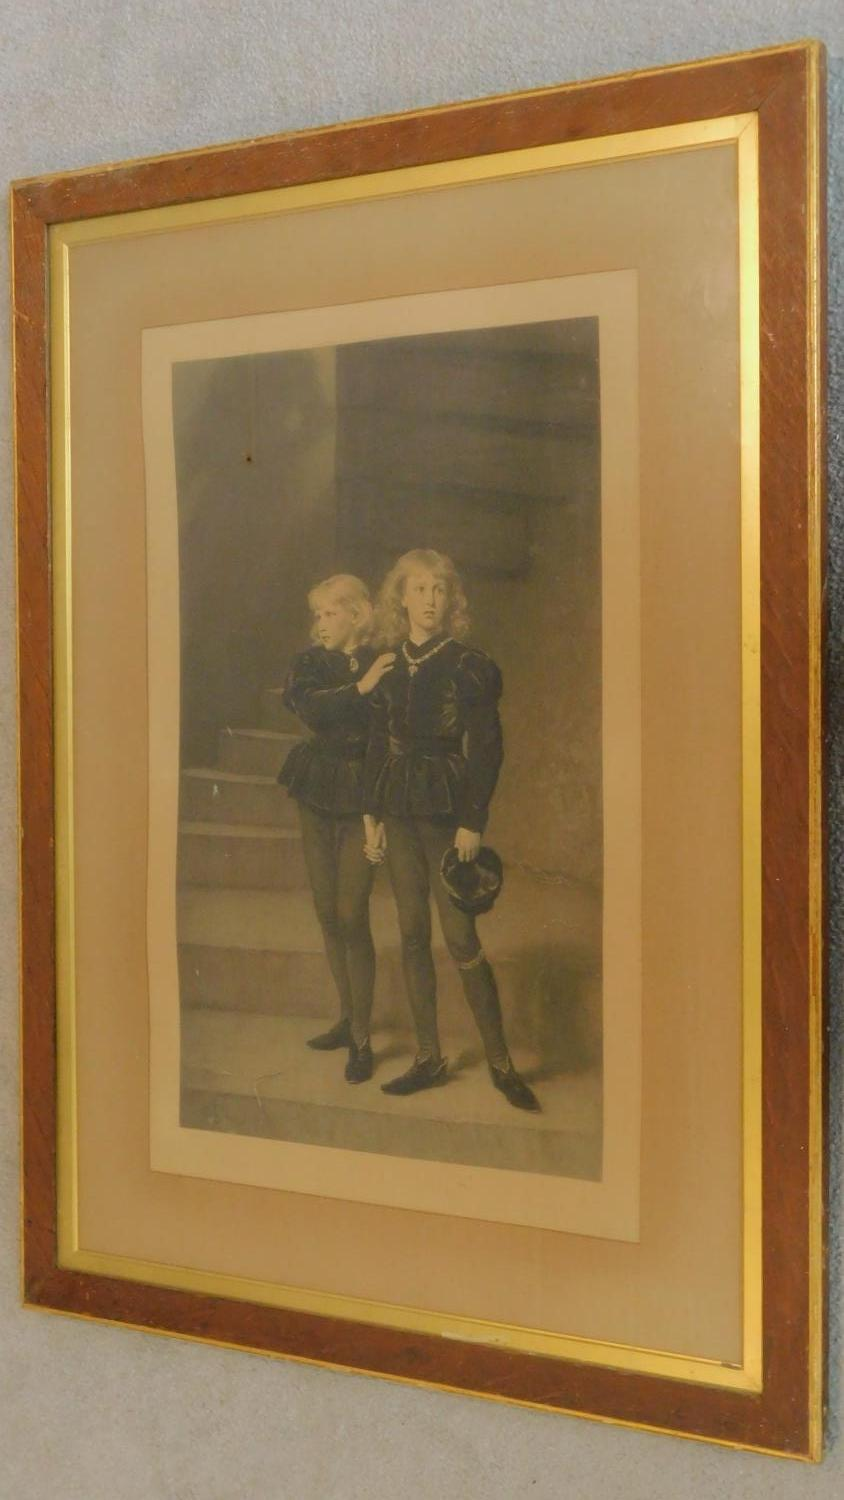 A large 19th century framed and glazed print of the young princes. 104x77cm